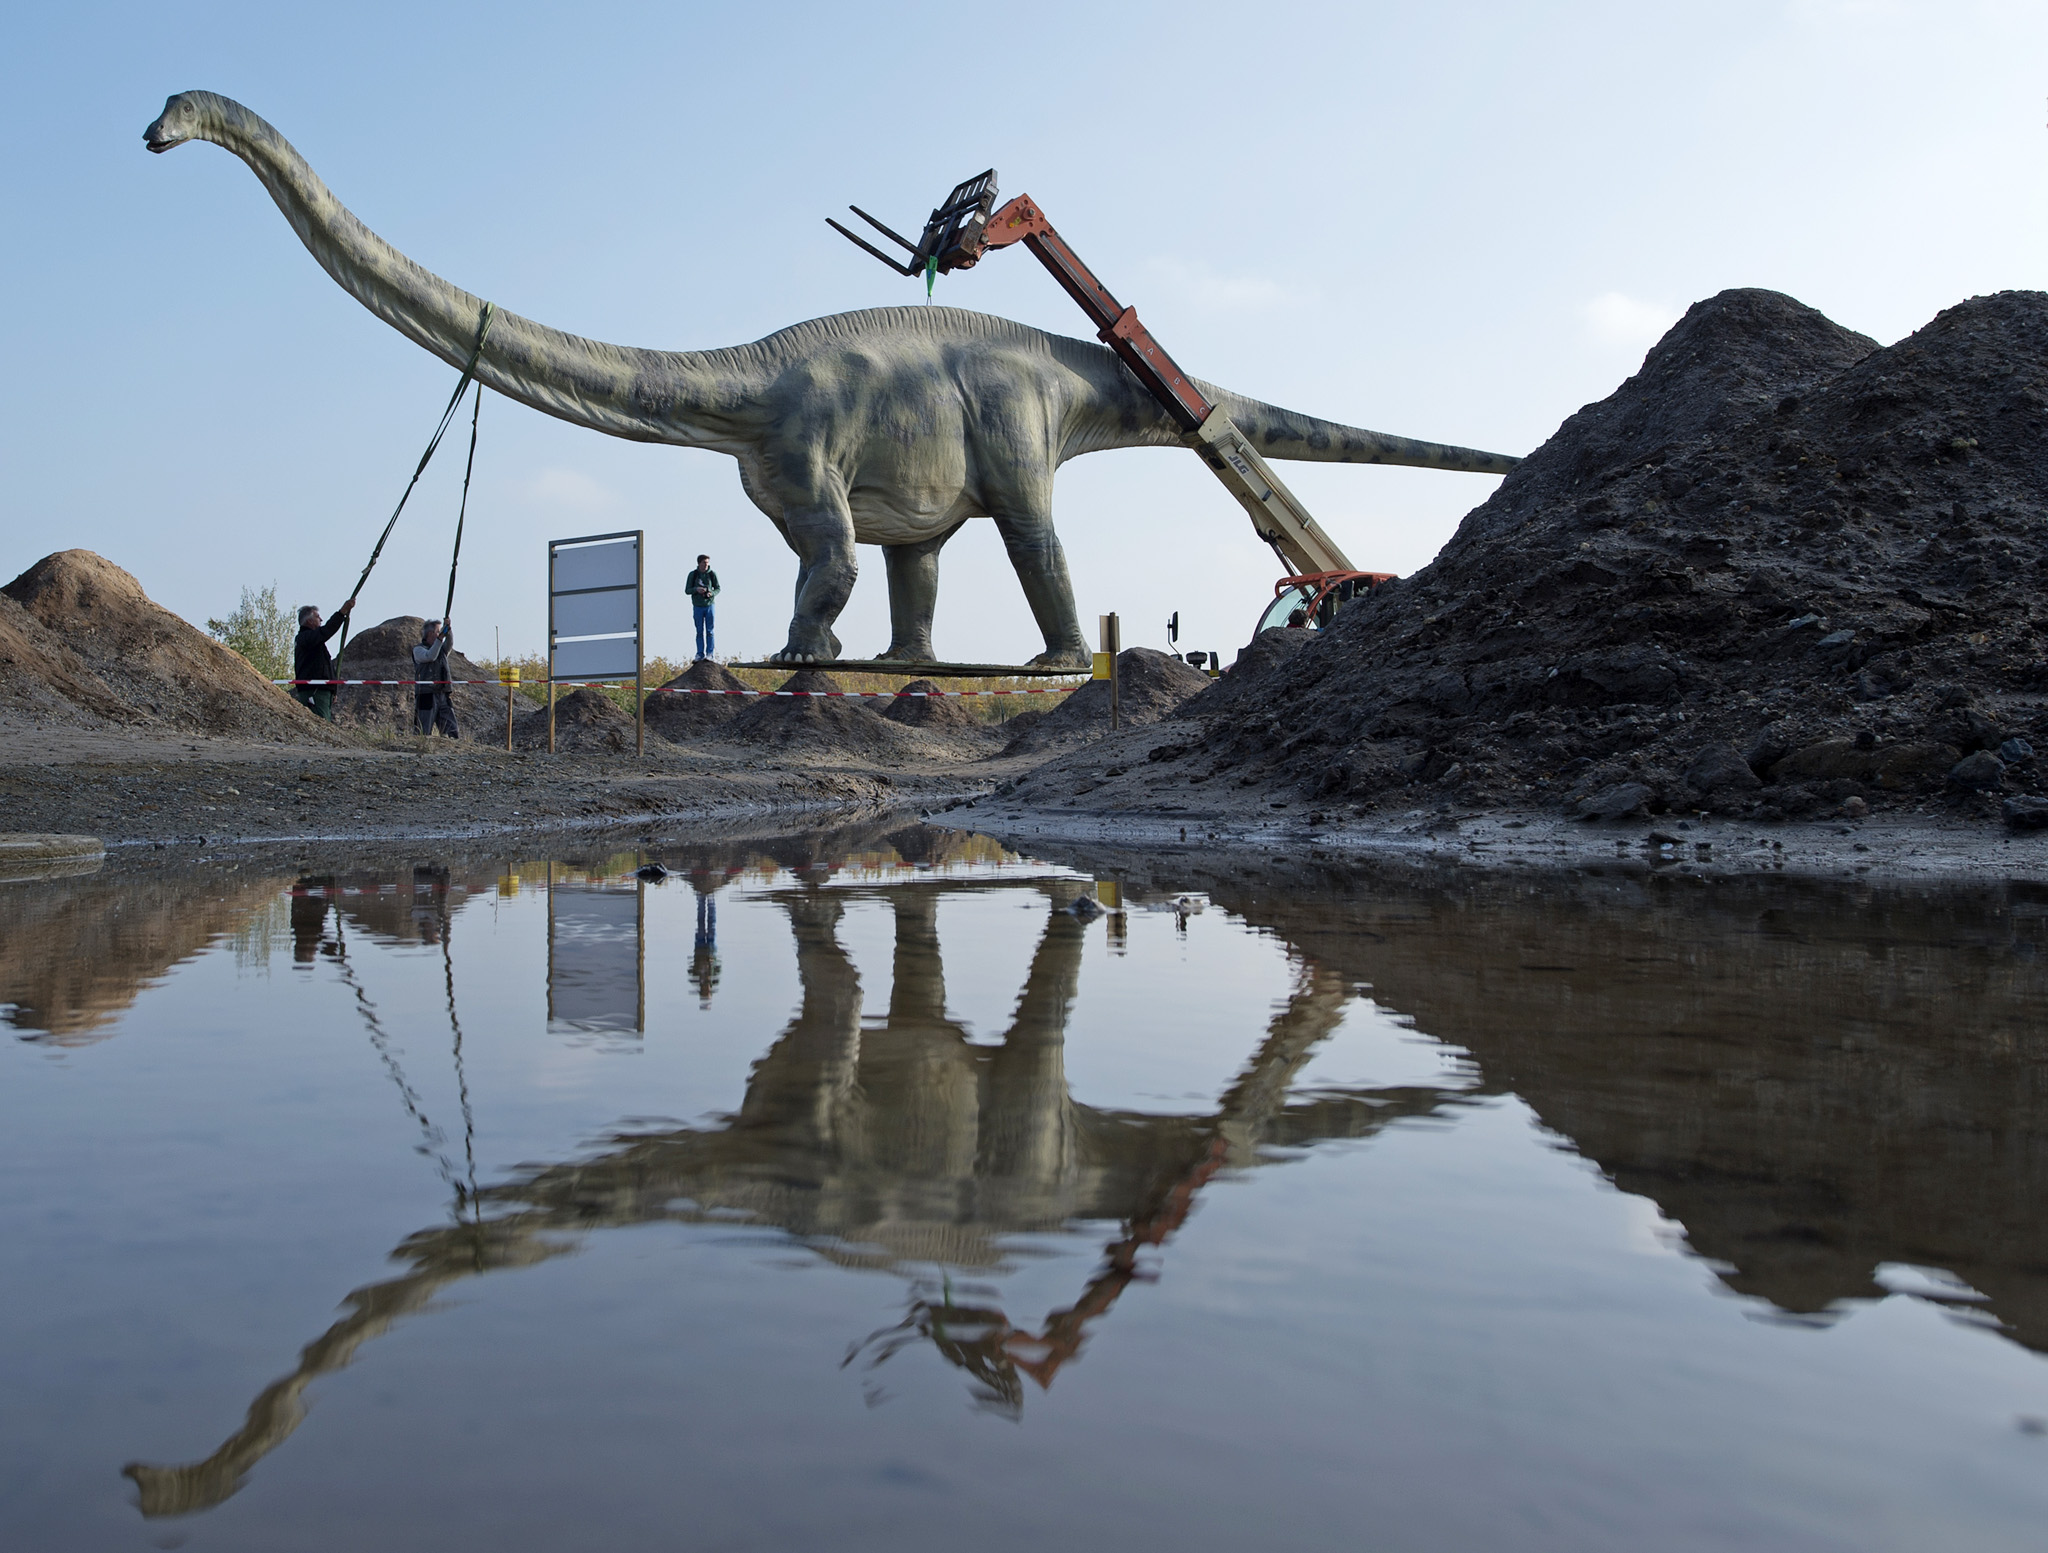 Workers transport a model of a dinosaur  at the exhibition 'World of Dinosaurs'  at a former lignite surface mining area   in Grosspoesna near Leipzig, central Germany, Wednesday, Oct. 29, 2014. More  than 50  exhibits of different species of dinosaurs  are on display  until  Nov. 30, 2014.  (AP Photo/Jens Meyer)